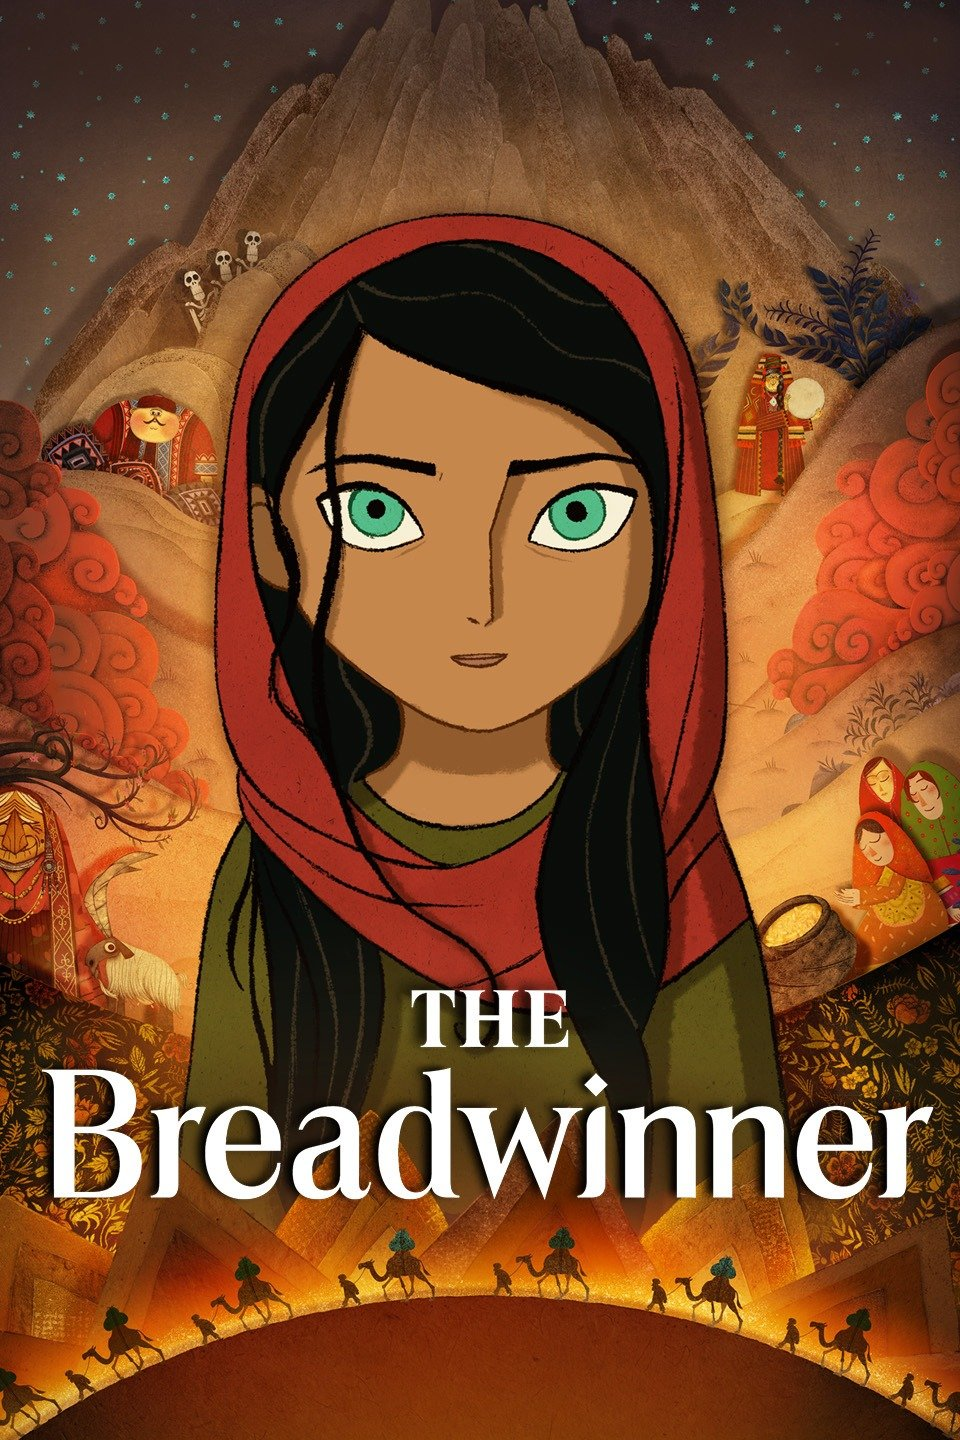 the breadwinner.jpg